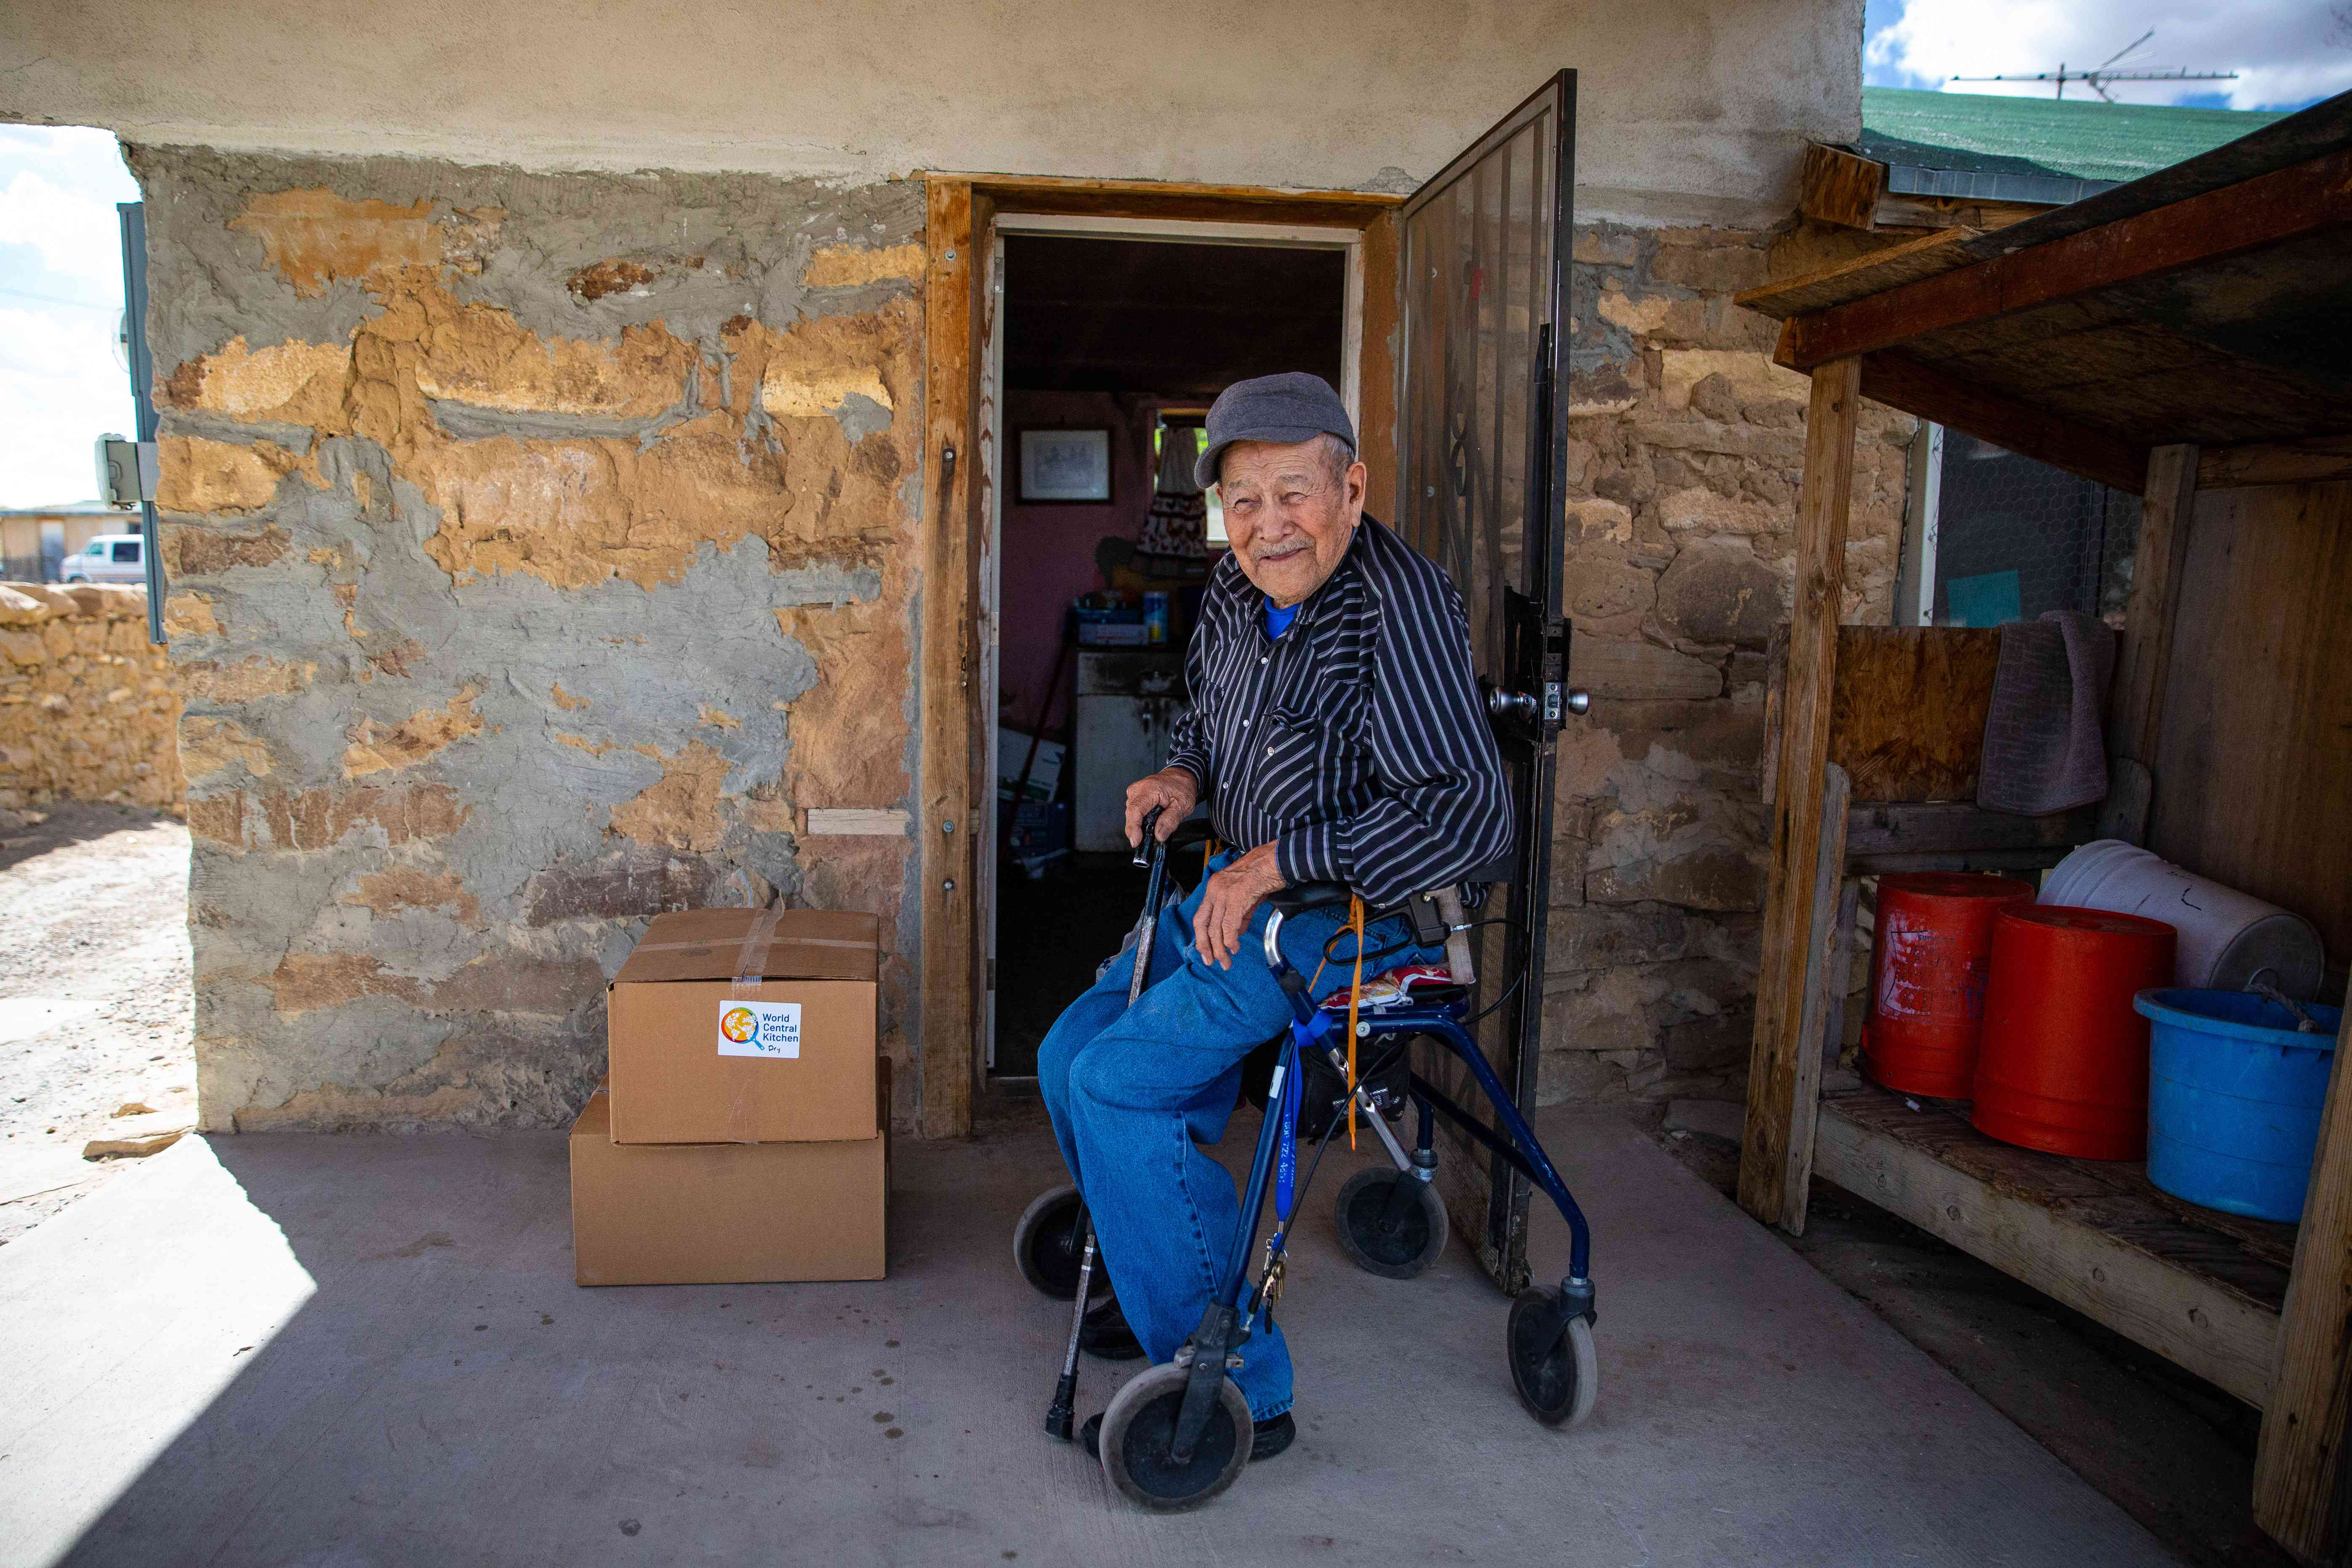 An elderly man in the Navajo nation receives a box of food from World Central Kitchen